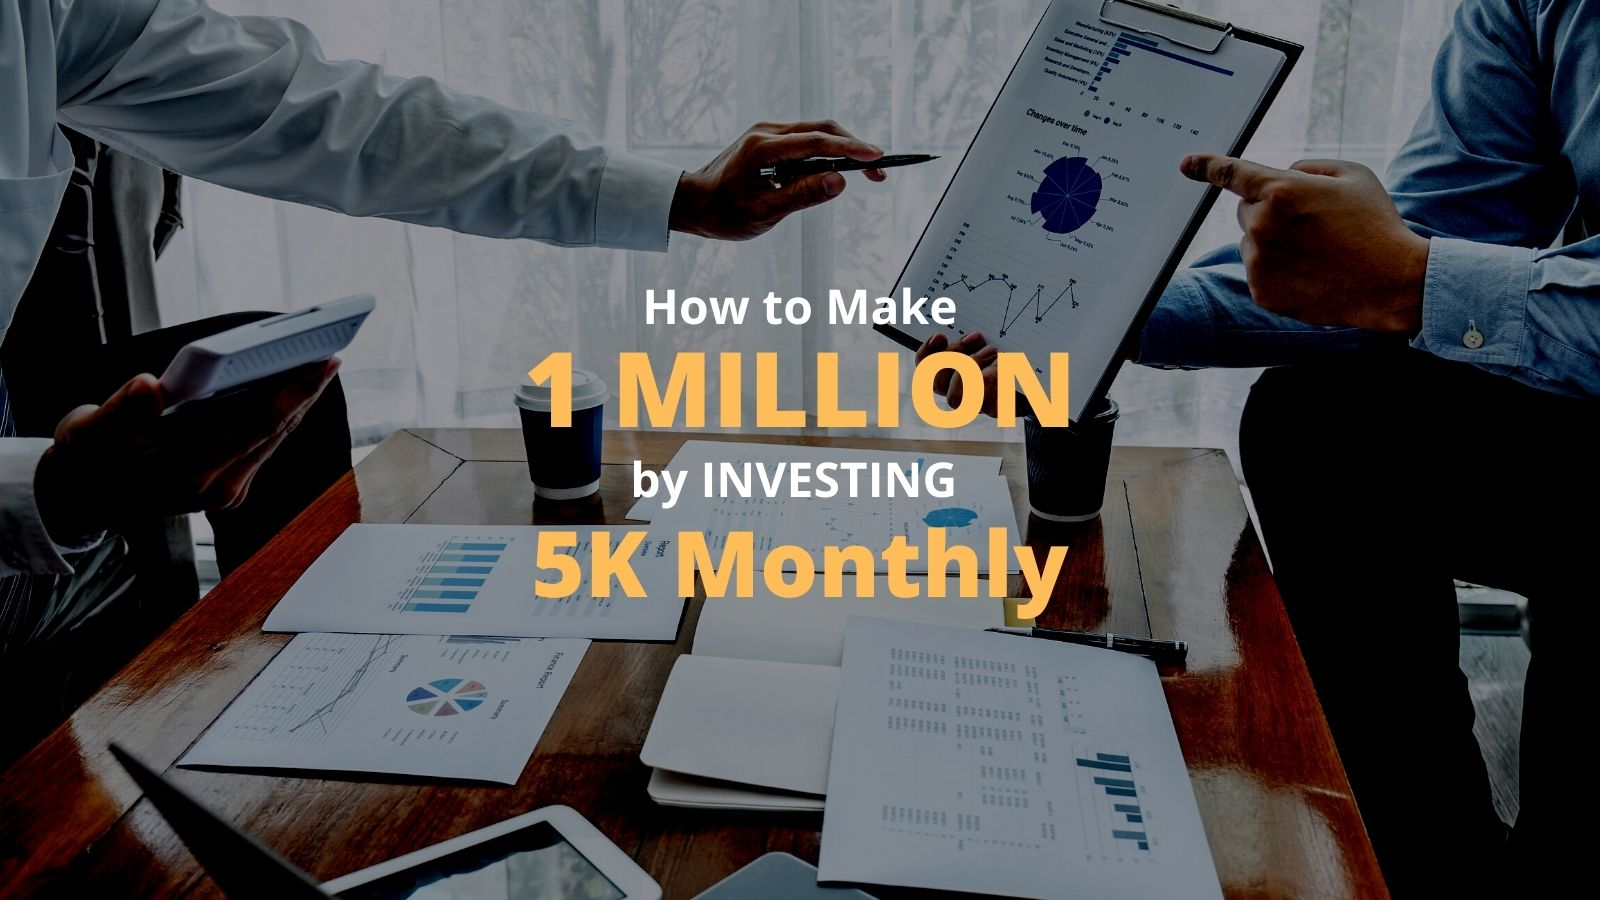 how to make 1 million by investing 5k monthly